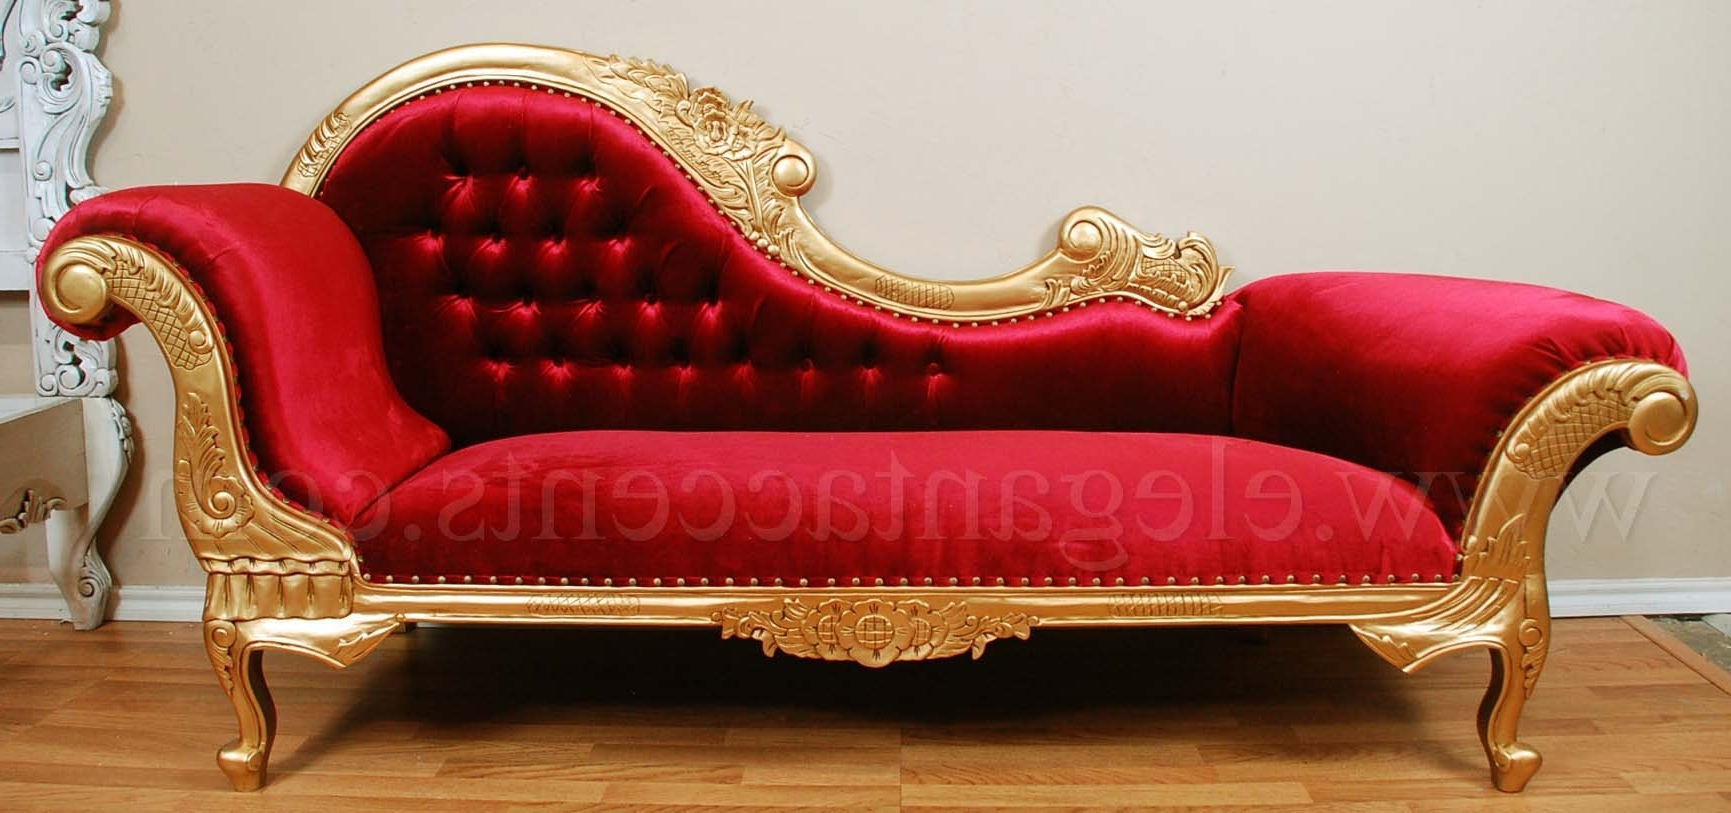 2017 Victorian Chaise Lounges Throughout Impressive On Victorian Chaise Lounge With Victorian Chaise Gold (View 3 of 15)